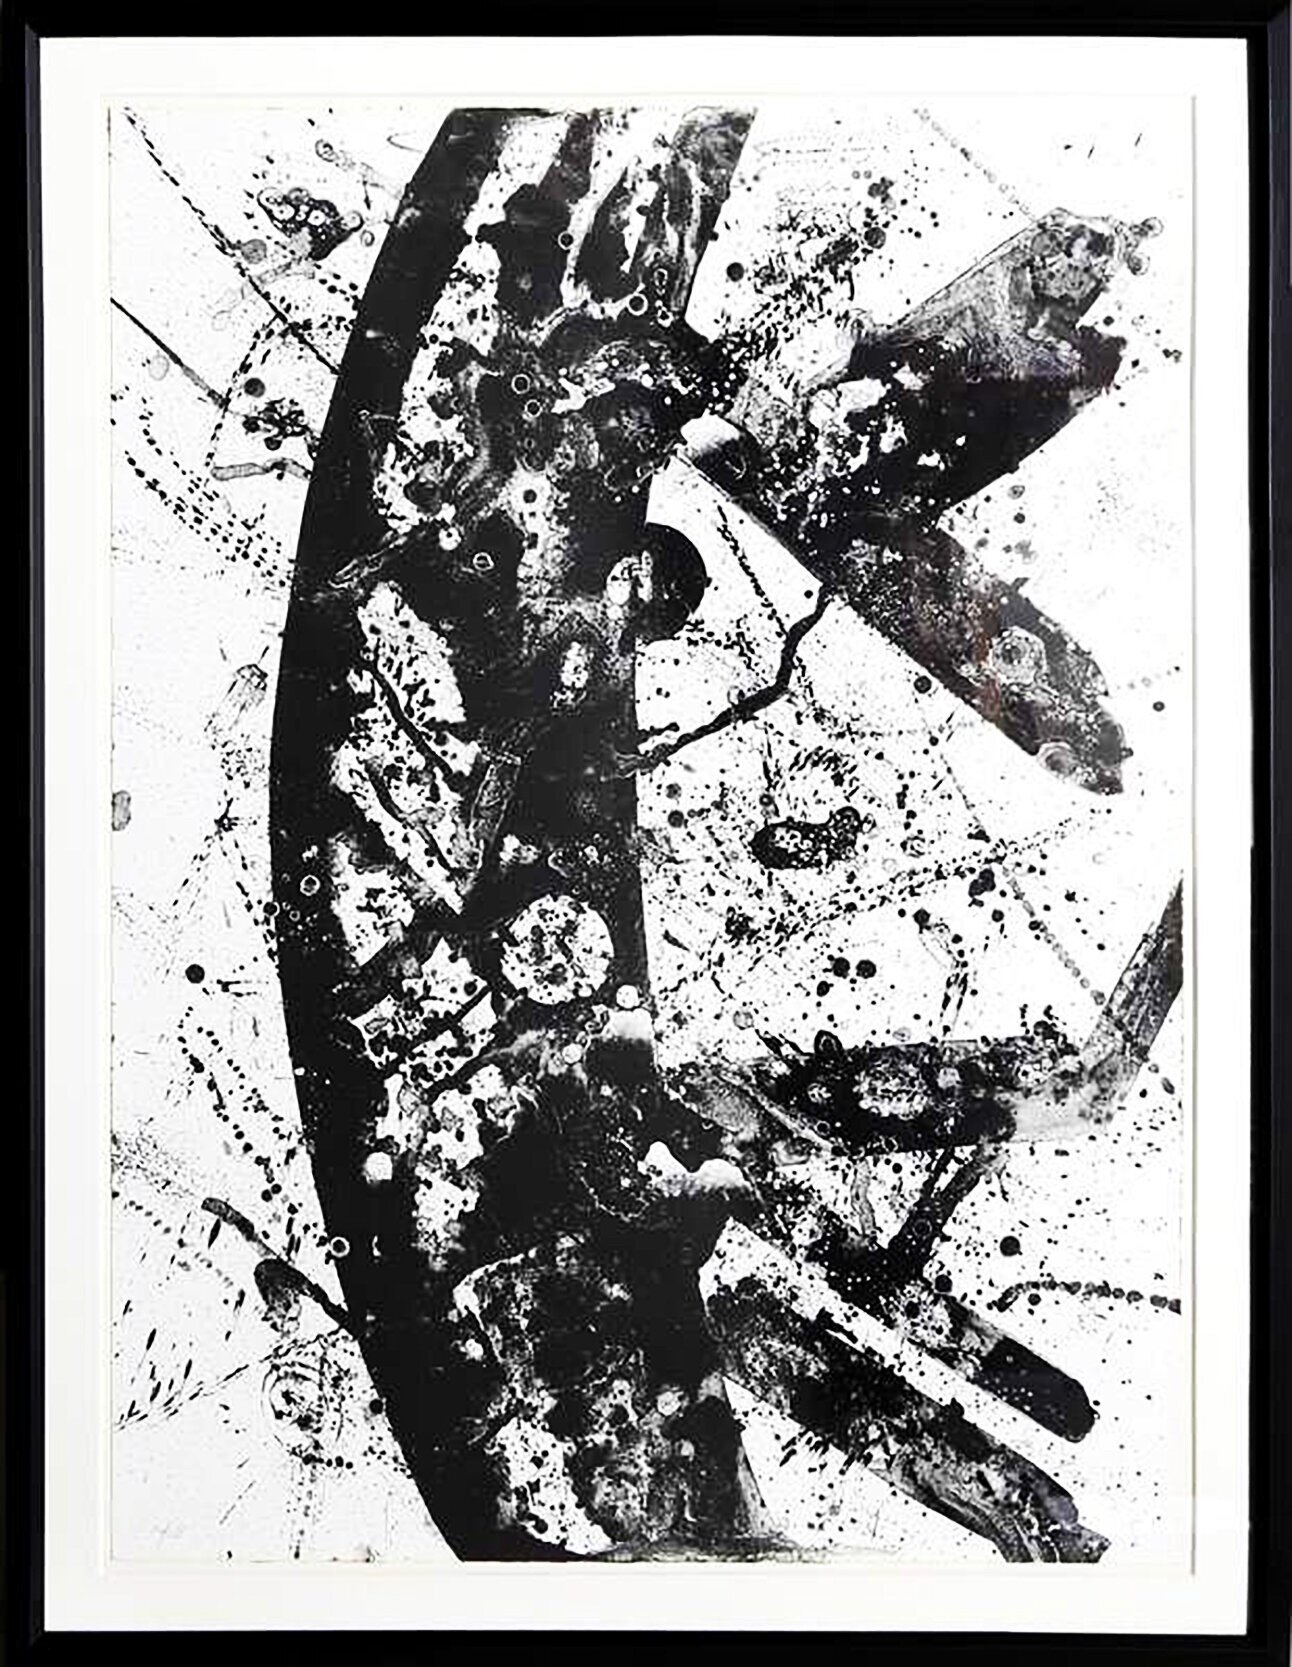 Untitled (SF-196) , 1975  Lithograph  From the numbered edition of 28  Approx. 36 x 60 inches framed  $2000   Provenance   Artist to Anonymous Collector to  Santa Monica Auctions to ViCA   Exhibitions   Santa Monica Auctions, 2017  Art In Place, ViCA/Newberry Lofts, 2017-2018  Art in a New Place, ViCA/Long Beach Museum of Art Annex, 2018  A History of Venice, Mike Kelley Gallery, 2019